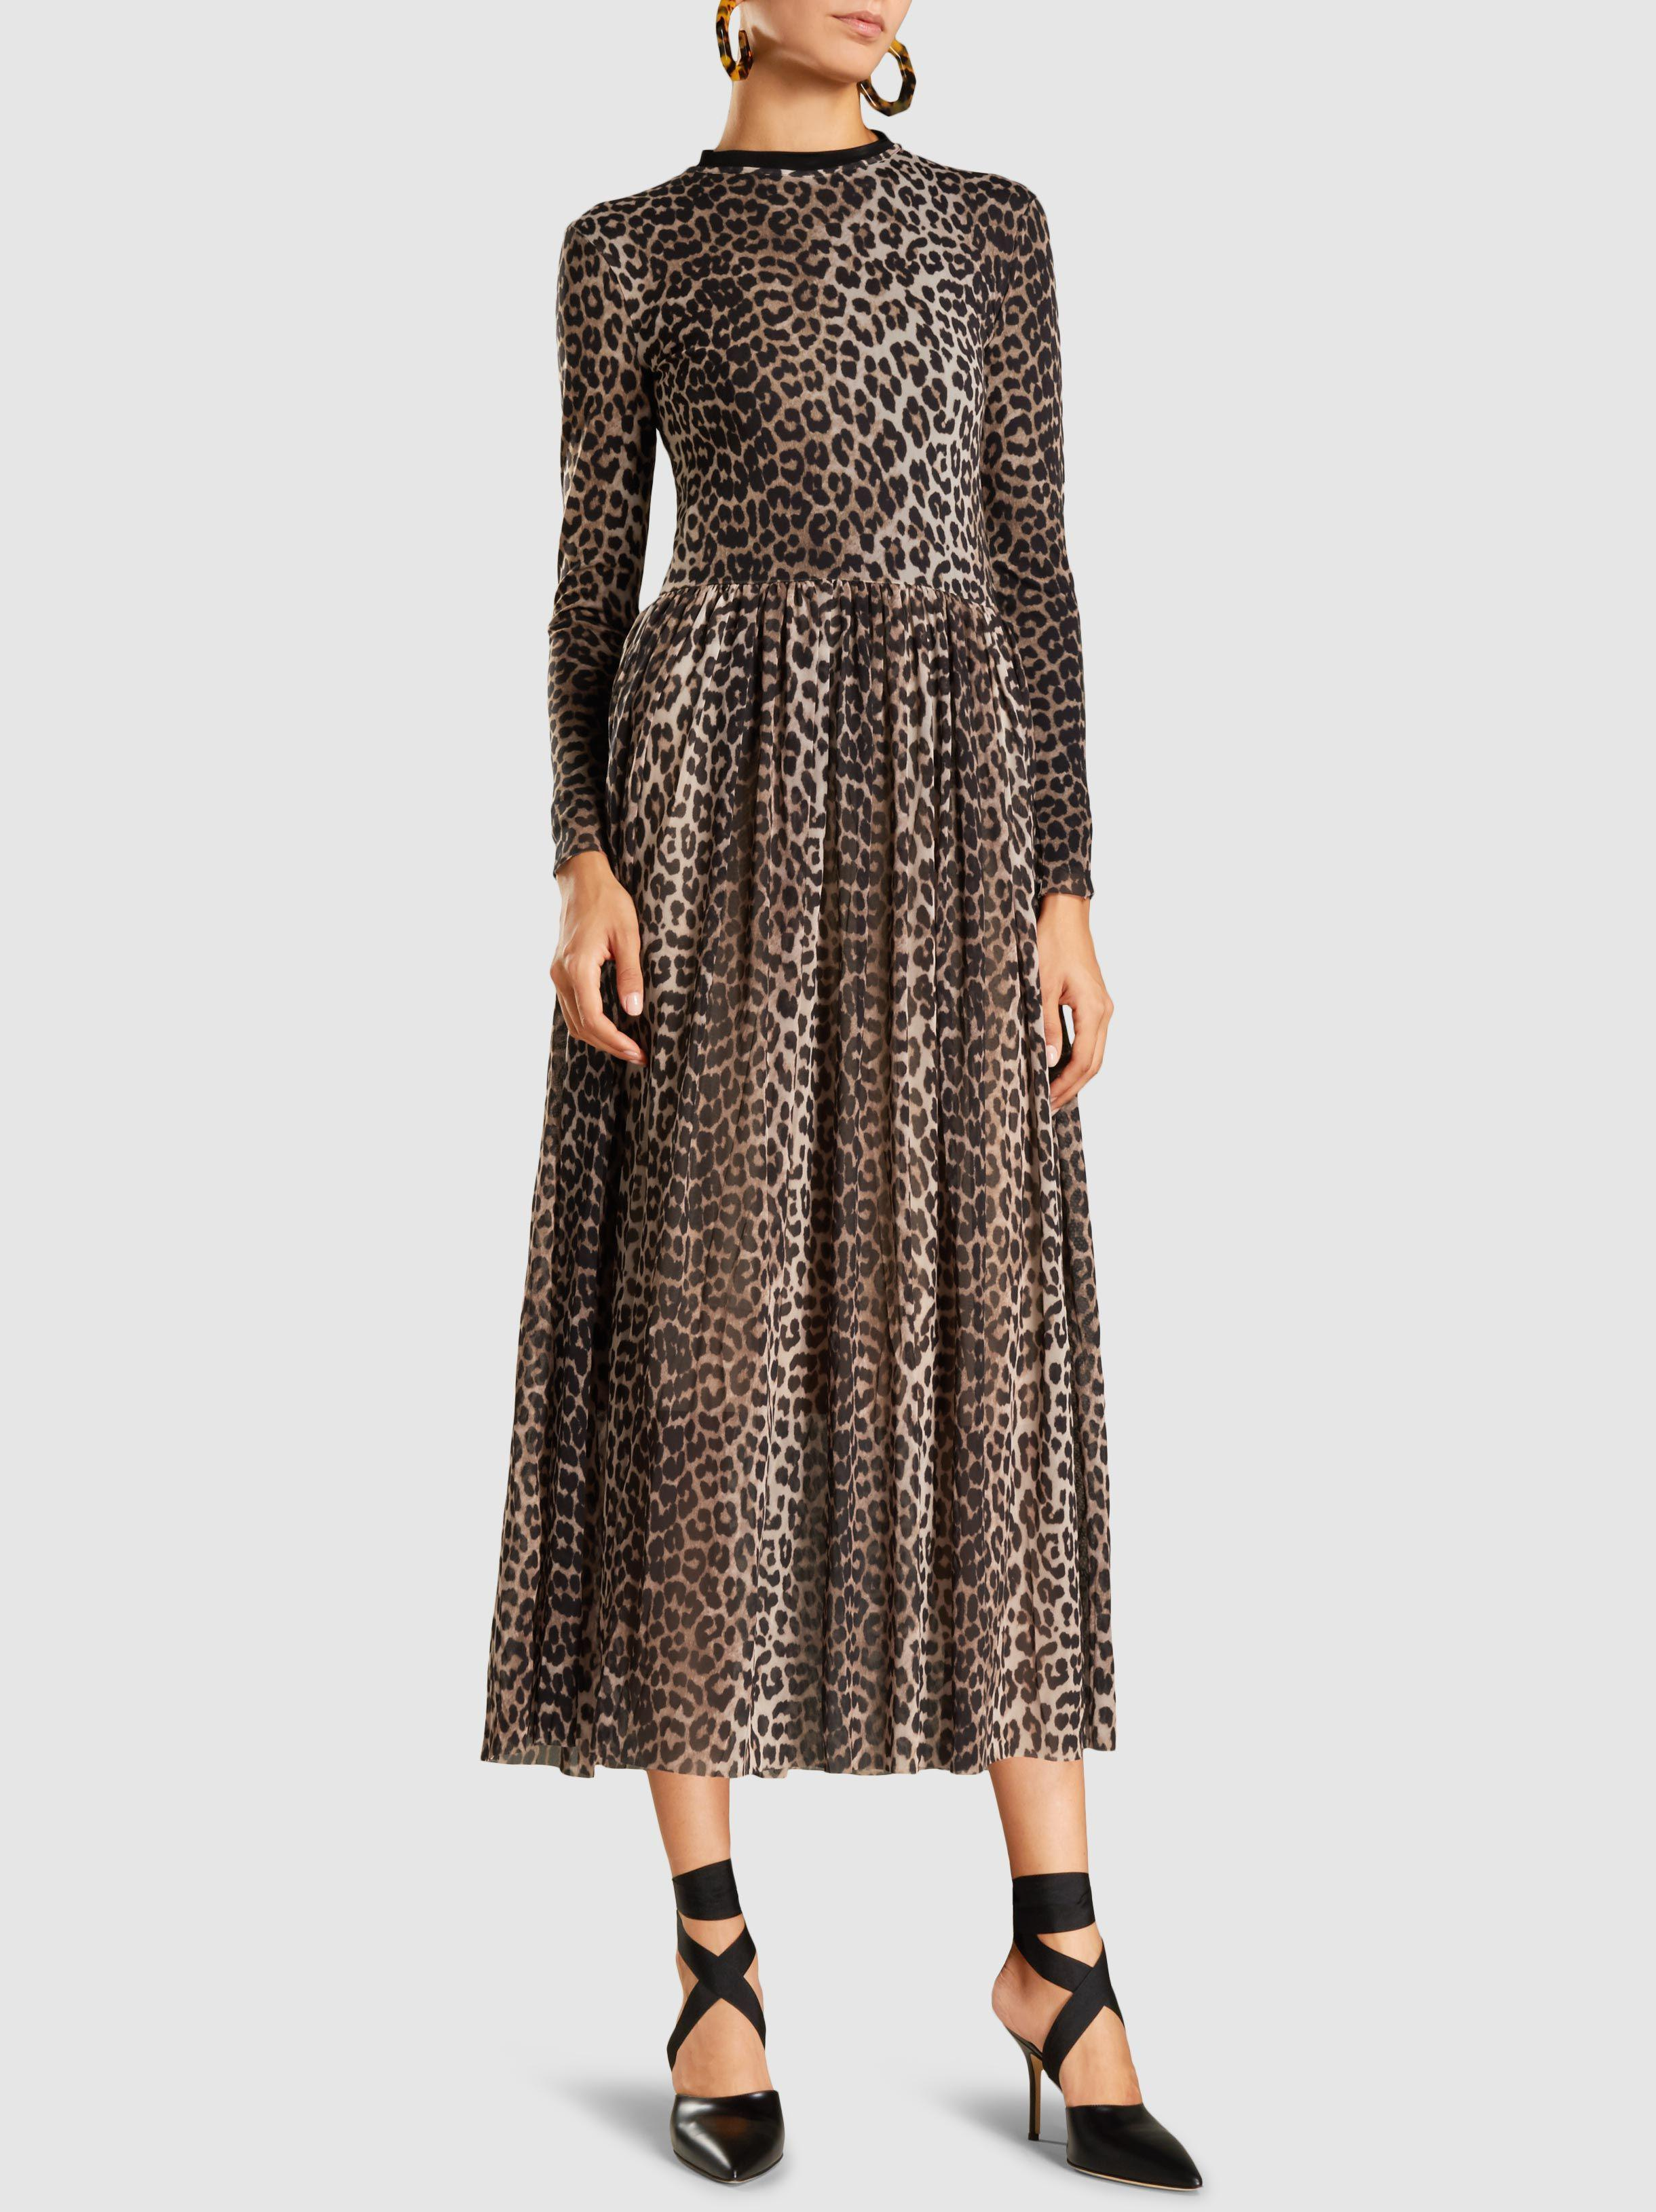 8a77ba6c Ganni Tilden Leopard-print Stretch-mesh Dress in Brown - Lyst